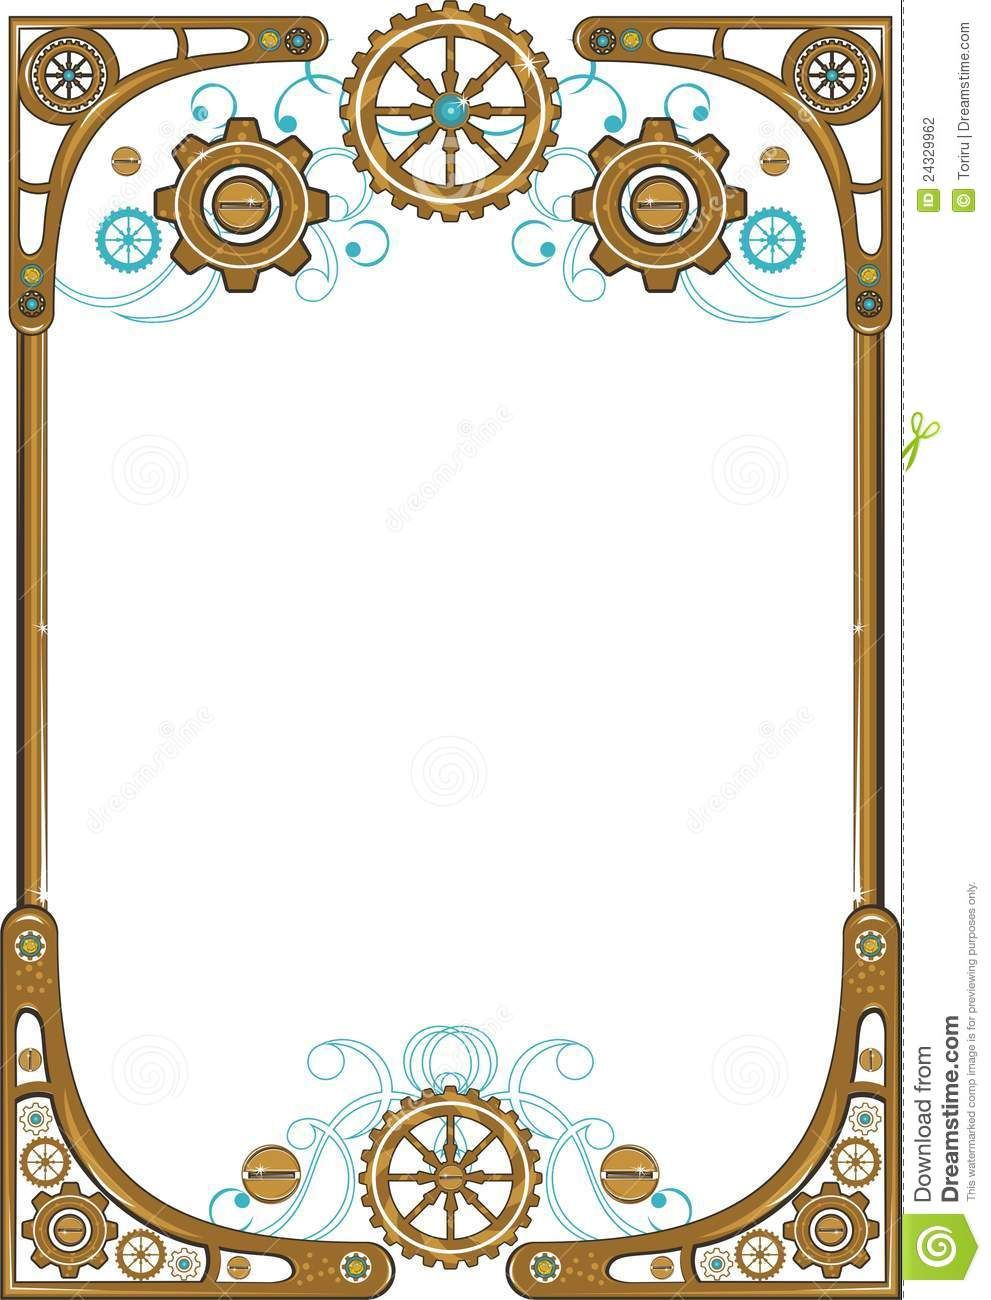 Pin by Brittany Ball on RedStick2015 | Pinterest | Steampunk, Frame ...